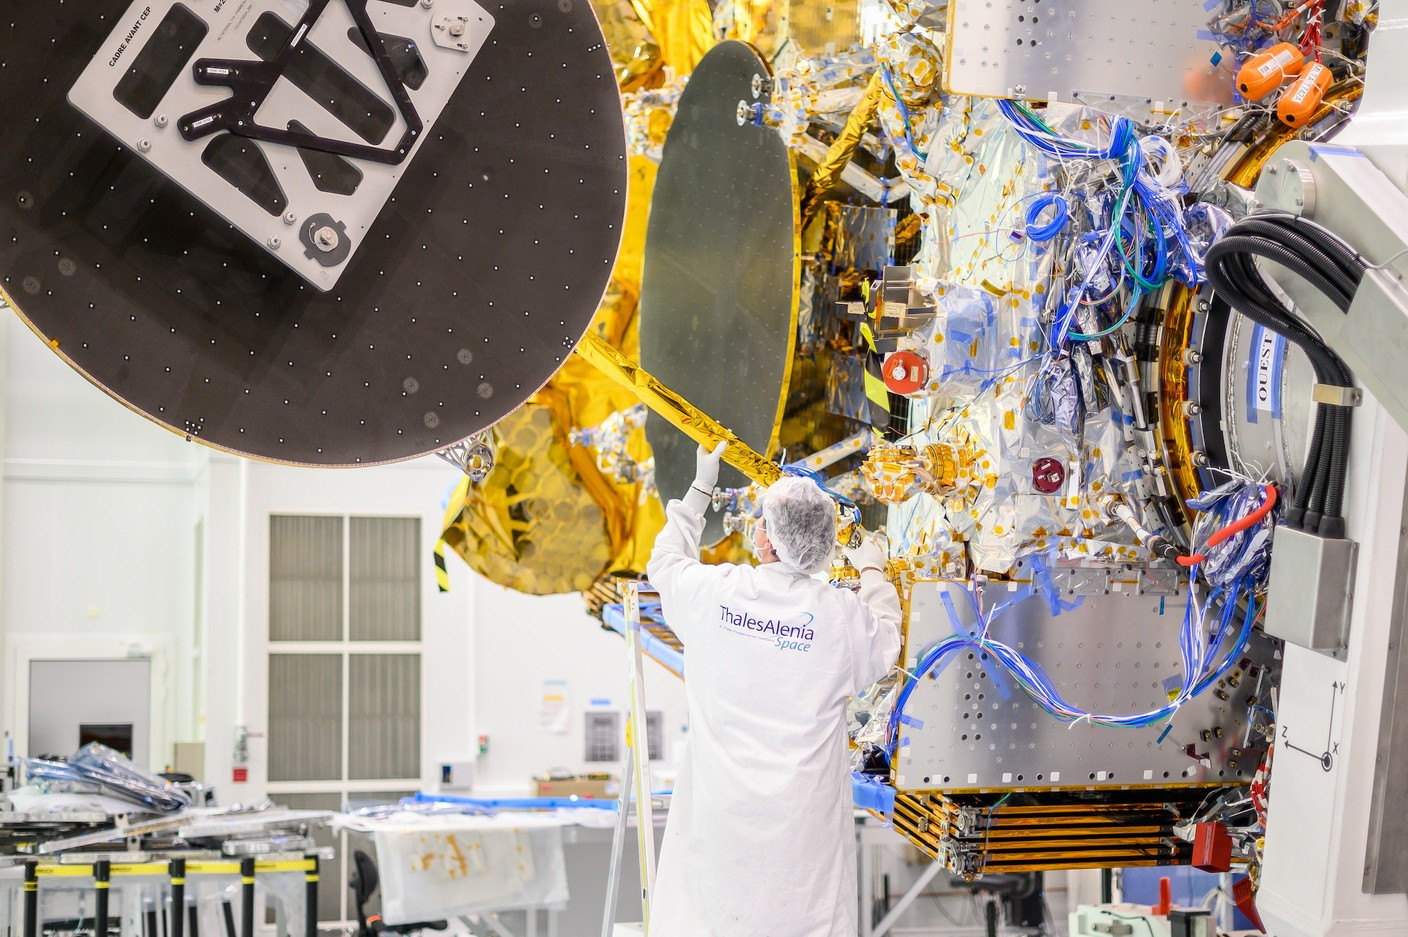 After the wiring, the assembly of the axes on which the reflectors will be deployed, essential parts. (Photo: Thales Alenia Space)